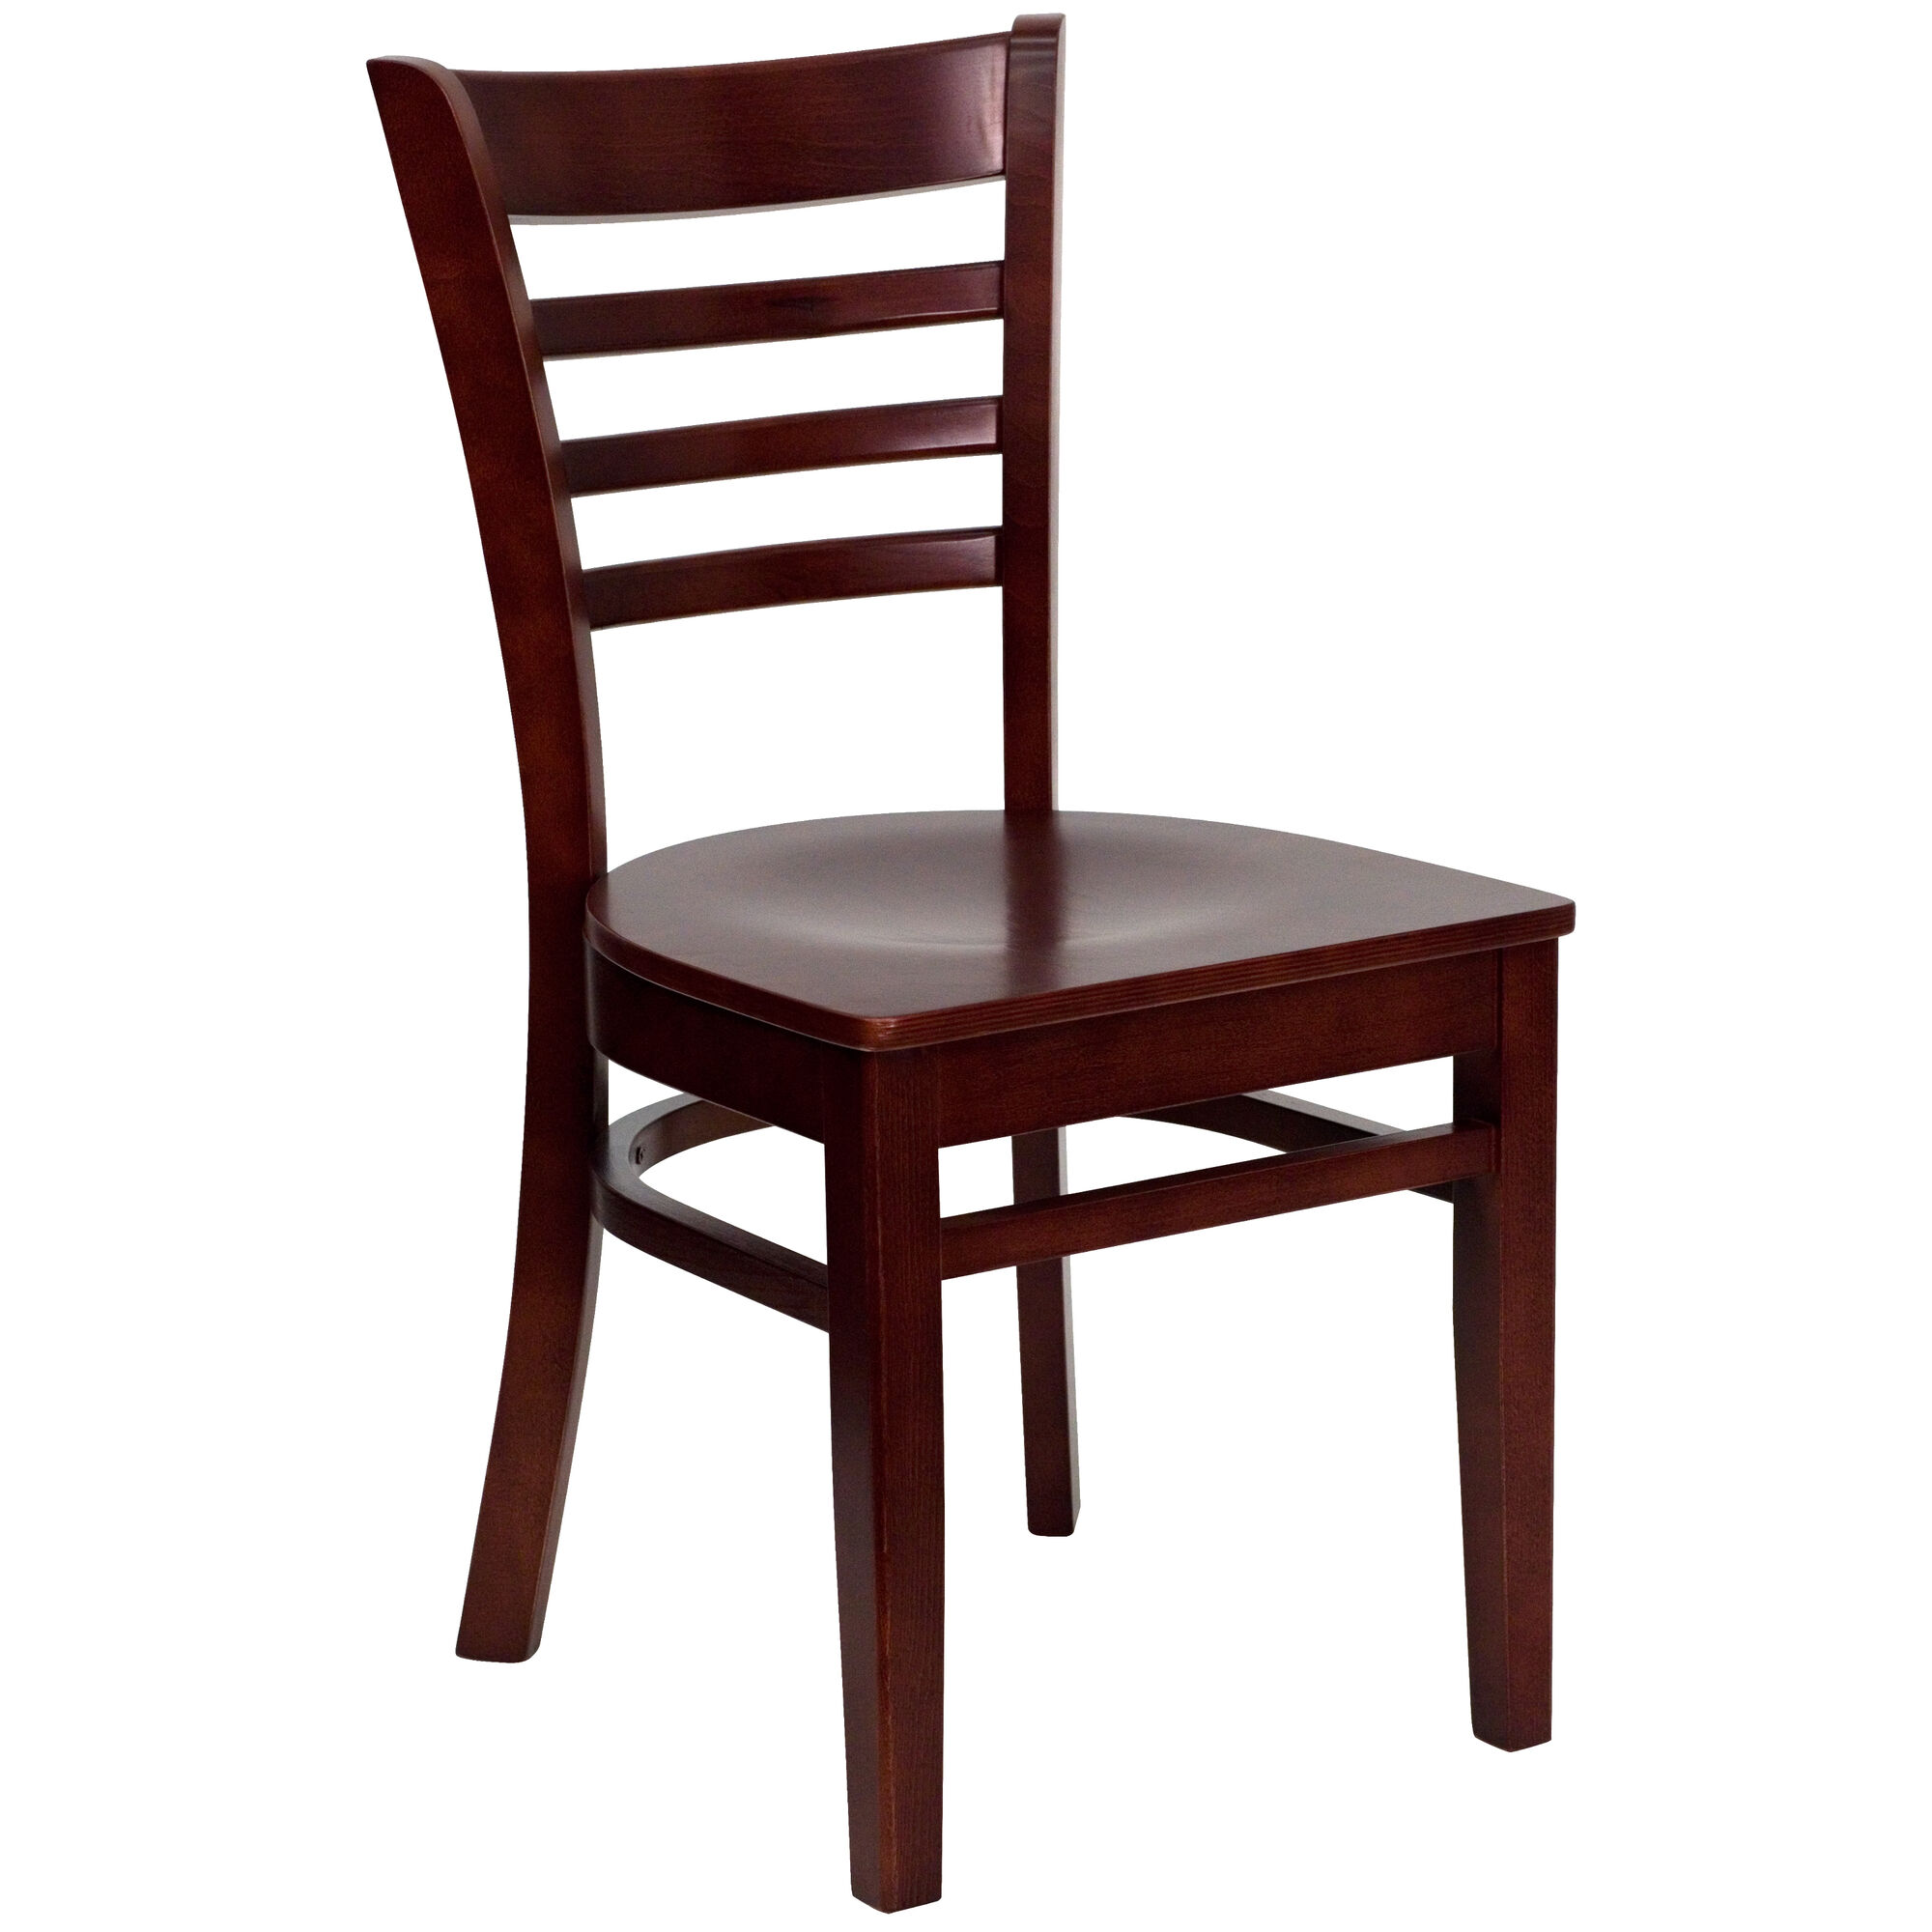 Mahogany wood dining chair bfdh mm tdr